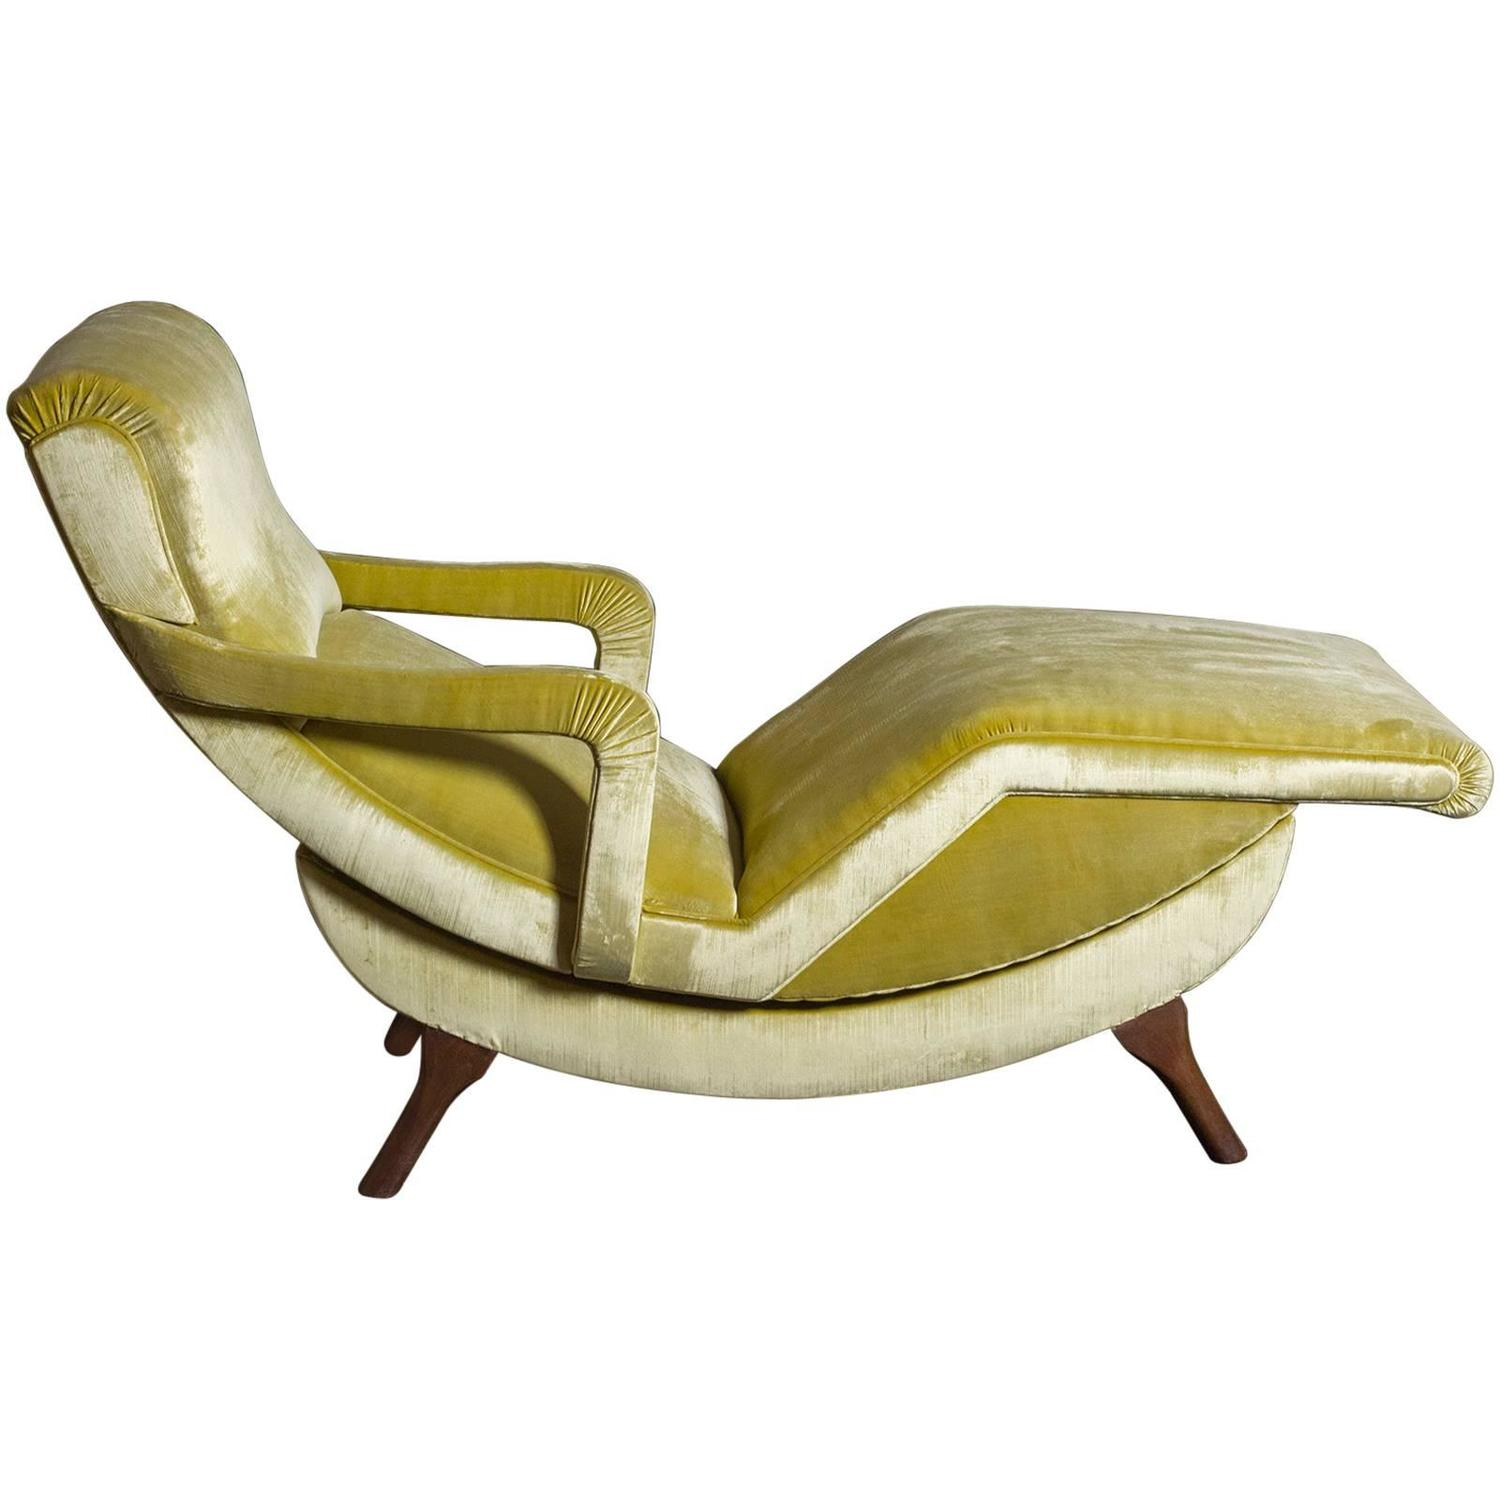 1970s italian chaise lounge at 1stdibs for Chaise 64 cm